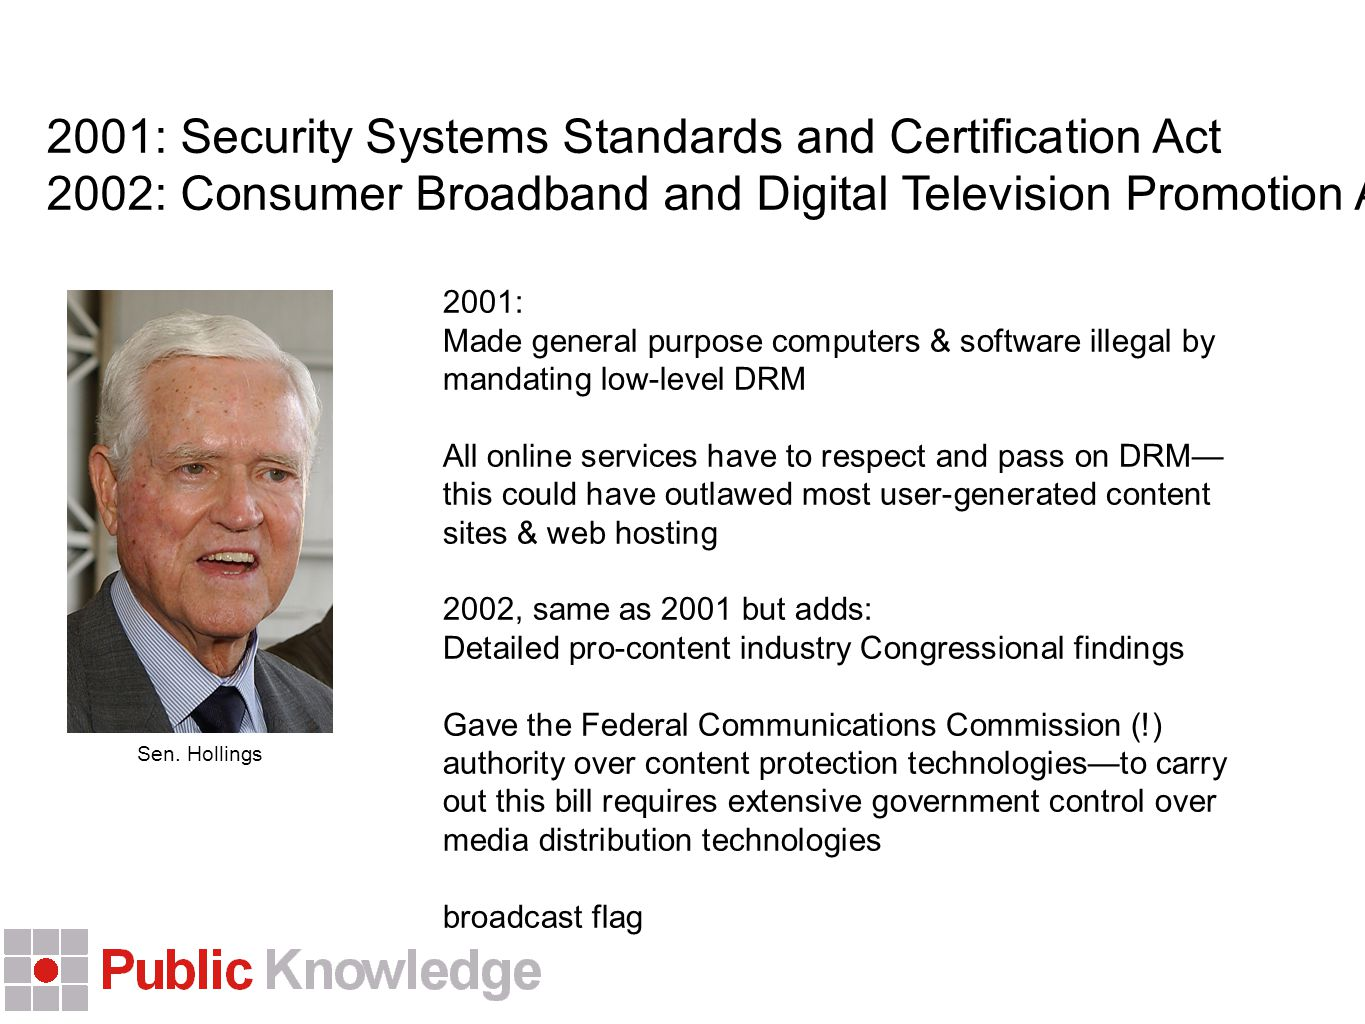 2001: Security Systems Standards and Certification Act 2002: Consumer Broadband and Digital Television Promotion Act 2001: Made general purpose computers & software illegal by mandating low-level DRM All online services have to respect and pass on DRM— this could have outlawed most user-generated content sites & web hosting 2002, same as 2001 but adds: Detailed pro-content industry Congressional findings Gave the Federal Communications Commission (!) authority over content protection technologies—to carry out this bill requires extensive government control over media distribution technologies broadcast flag Sen.